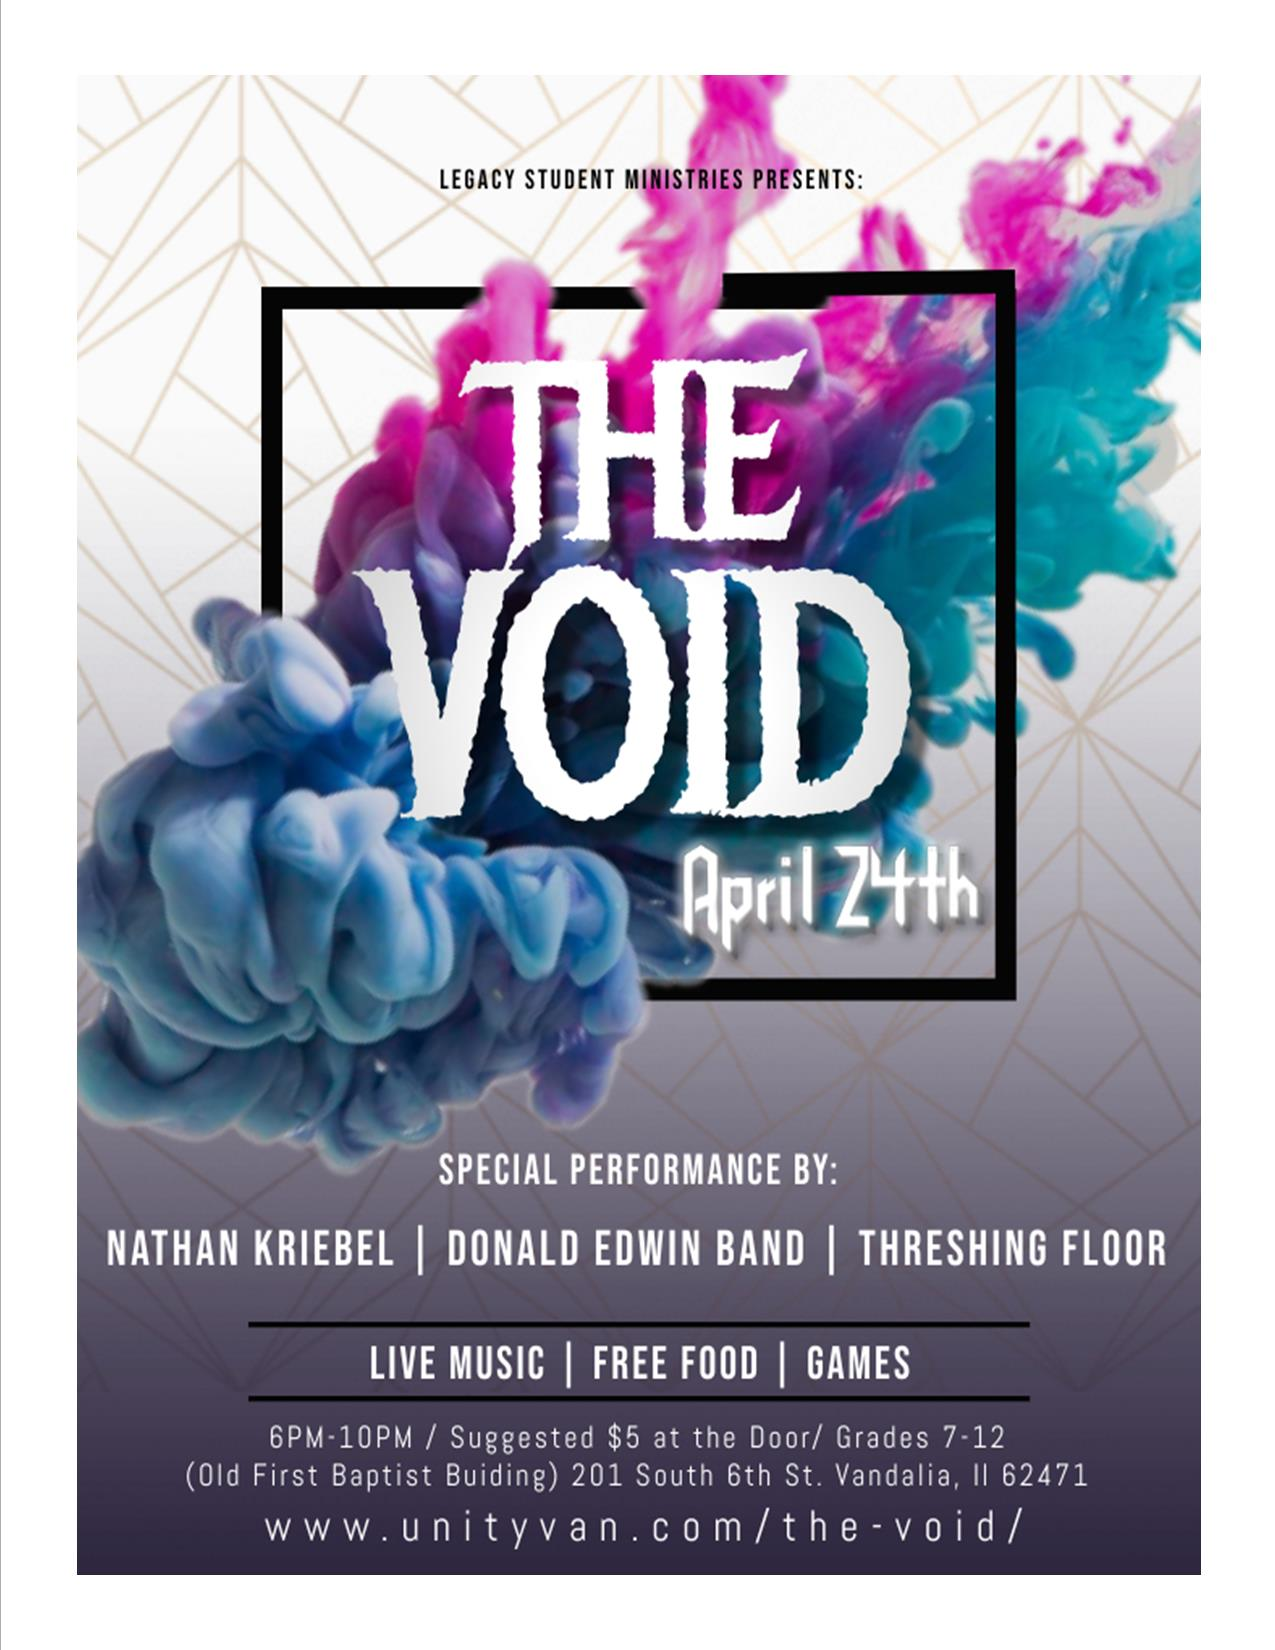 The Void April 24th 1